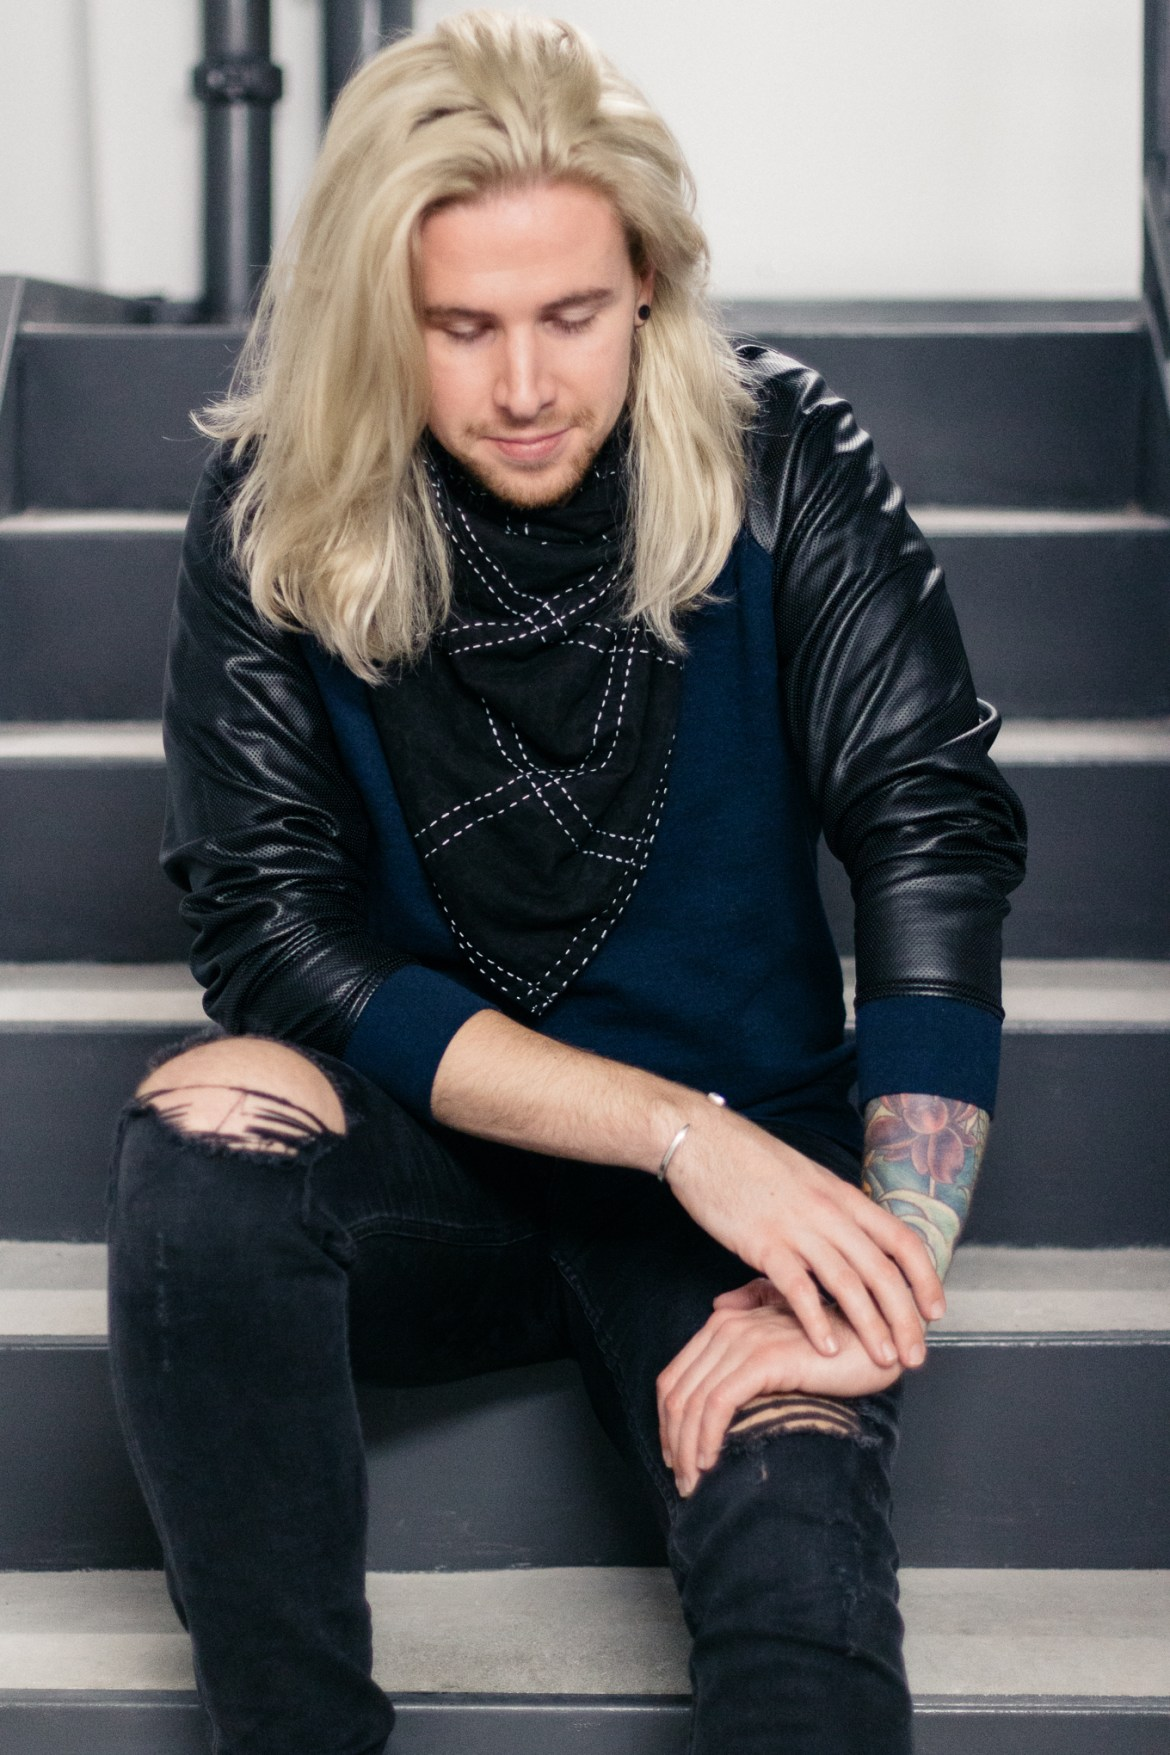 urban outfitters, anchal project, mens fall fashion, aloft hotel louisville, men with platinum blonde hair